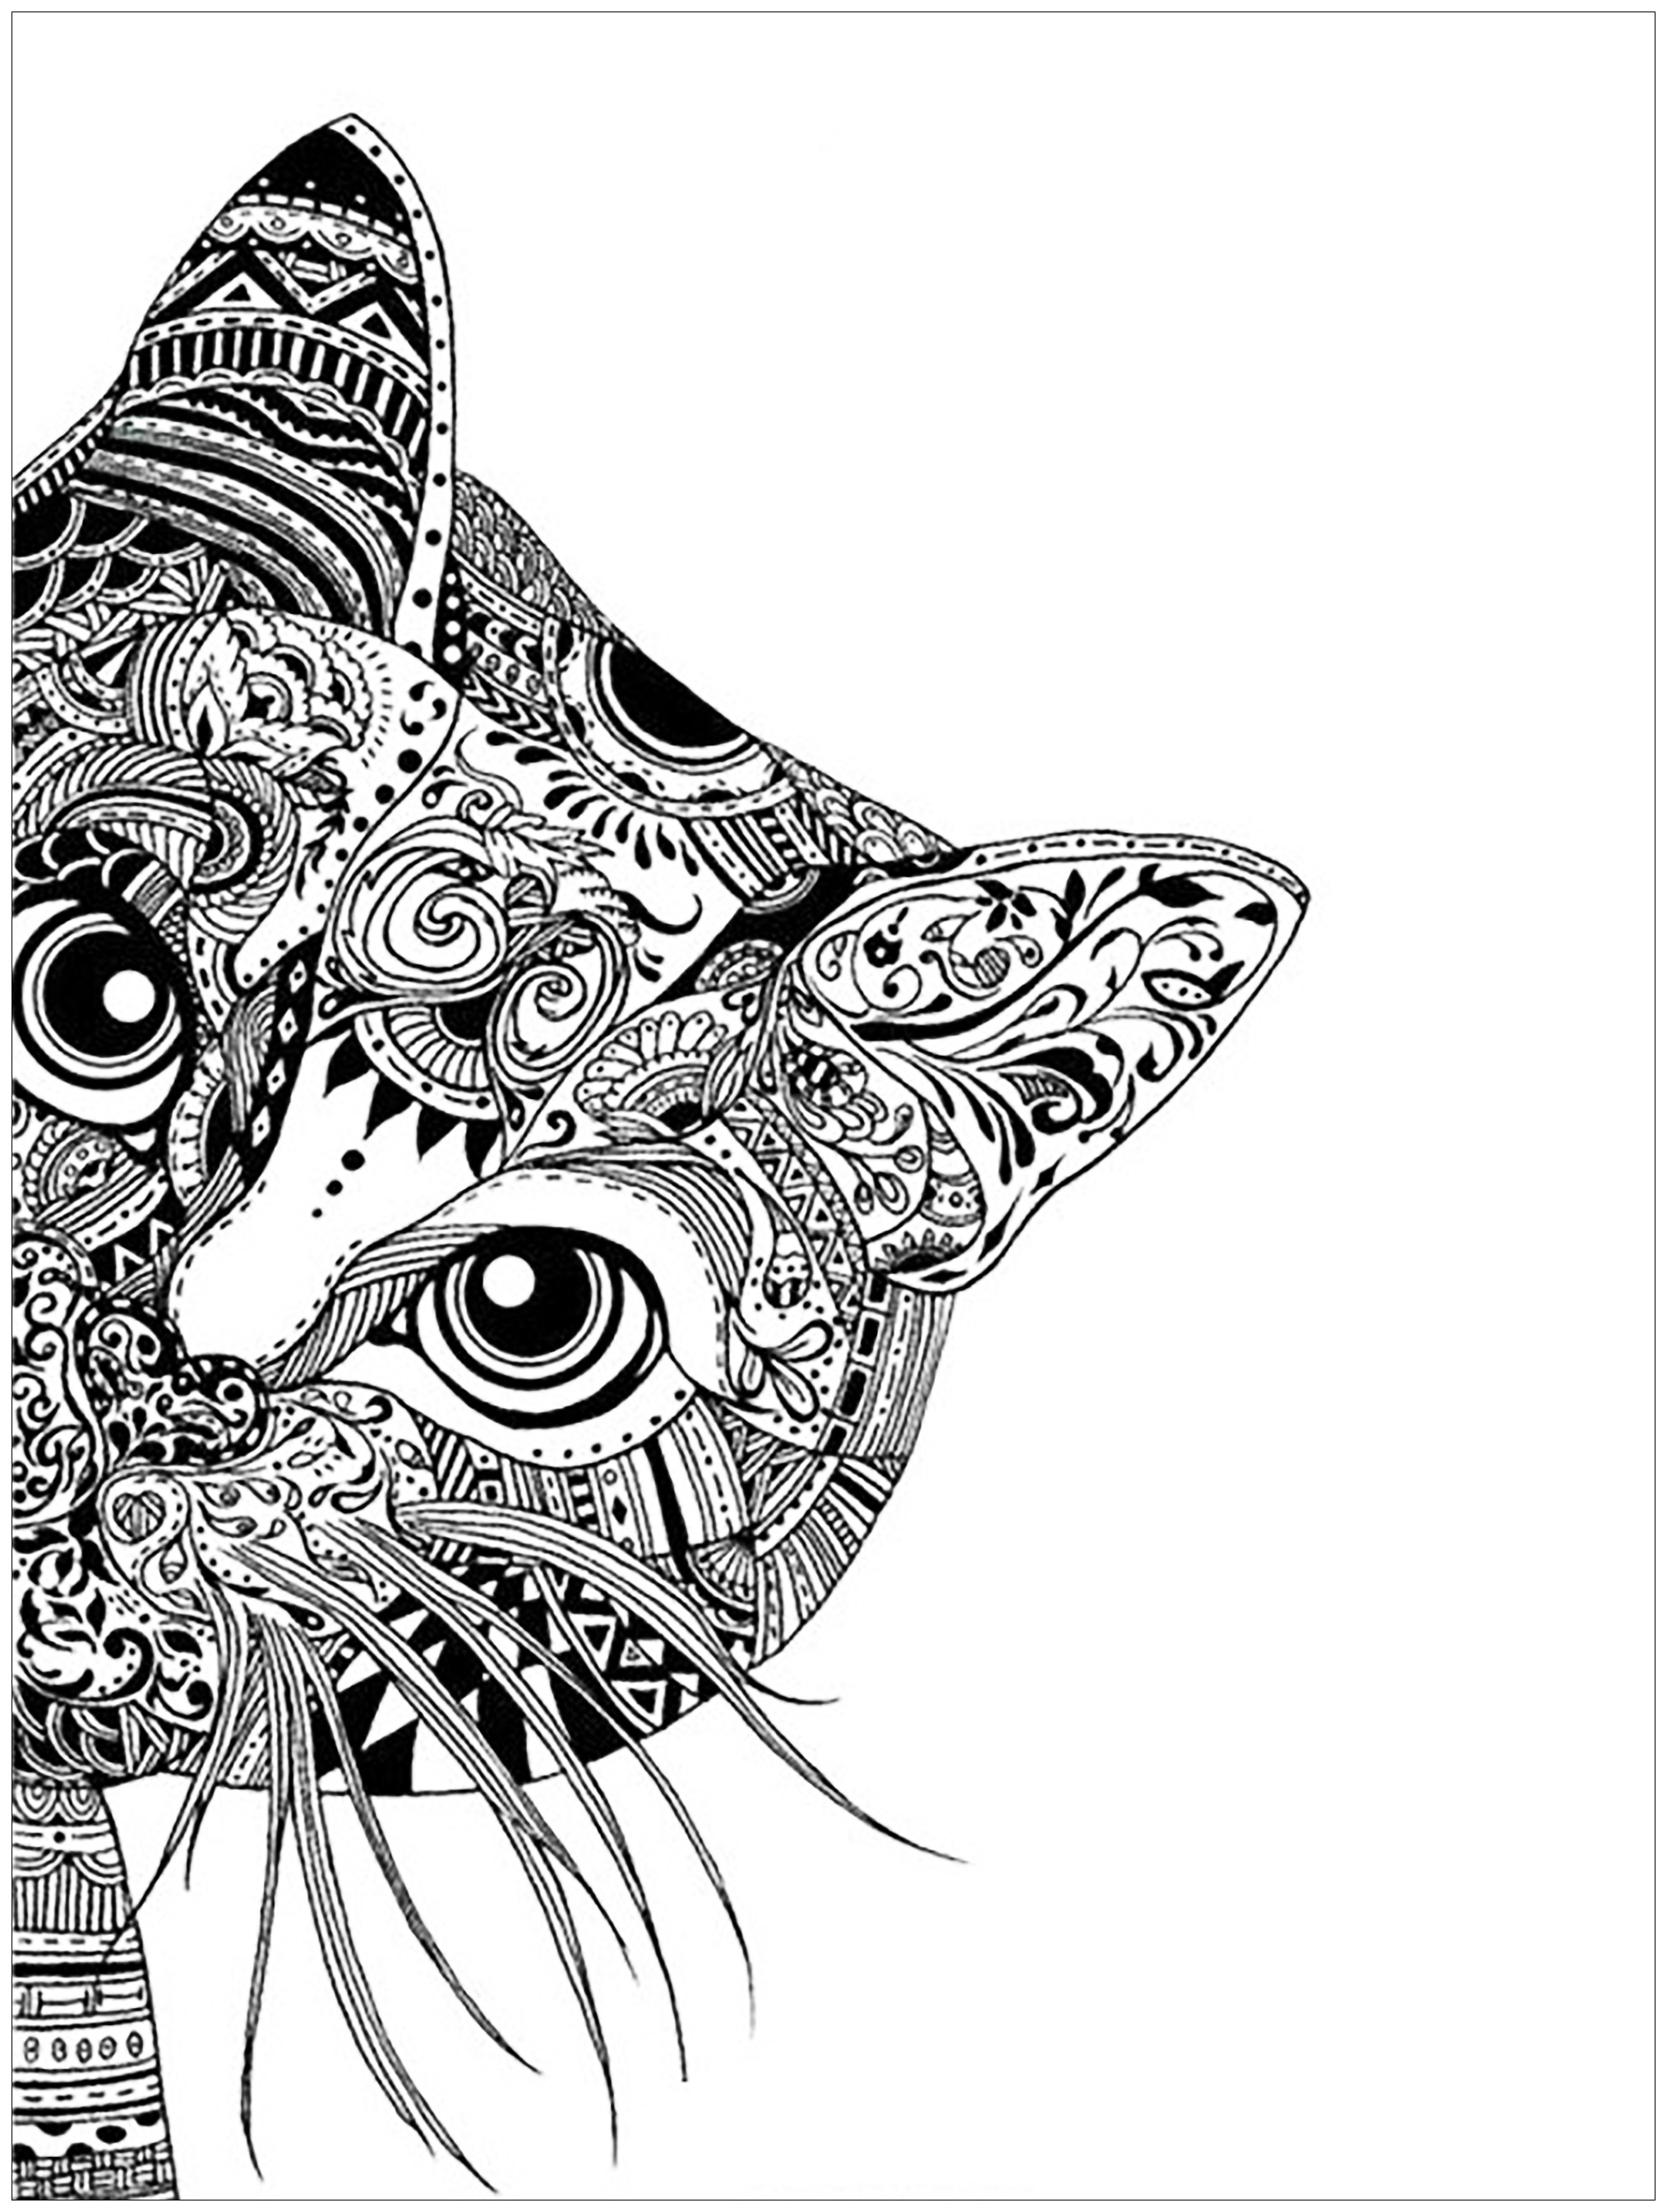 Coloring pages for adults - Pages Cat Head Image With Cat Zentangle From The Gallery Animals